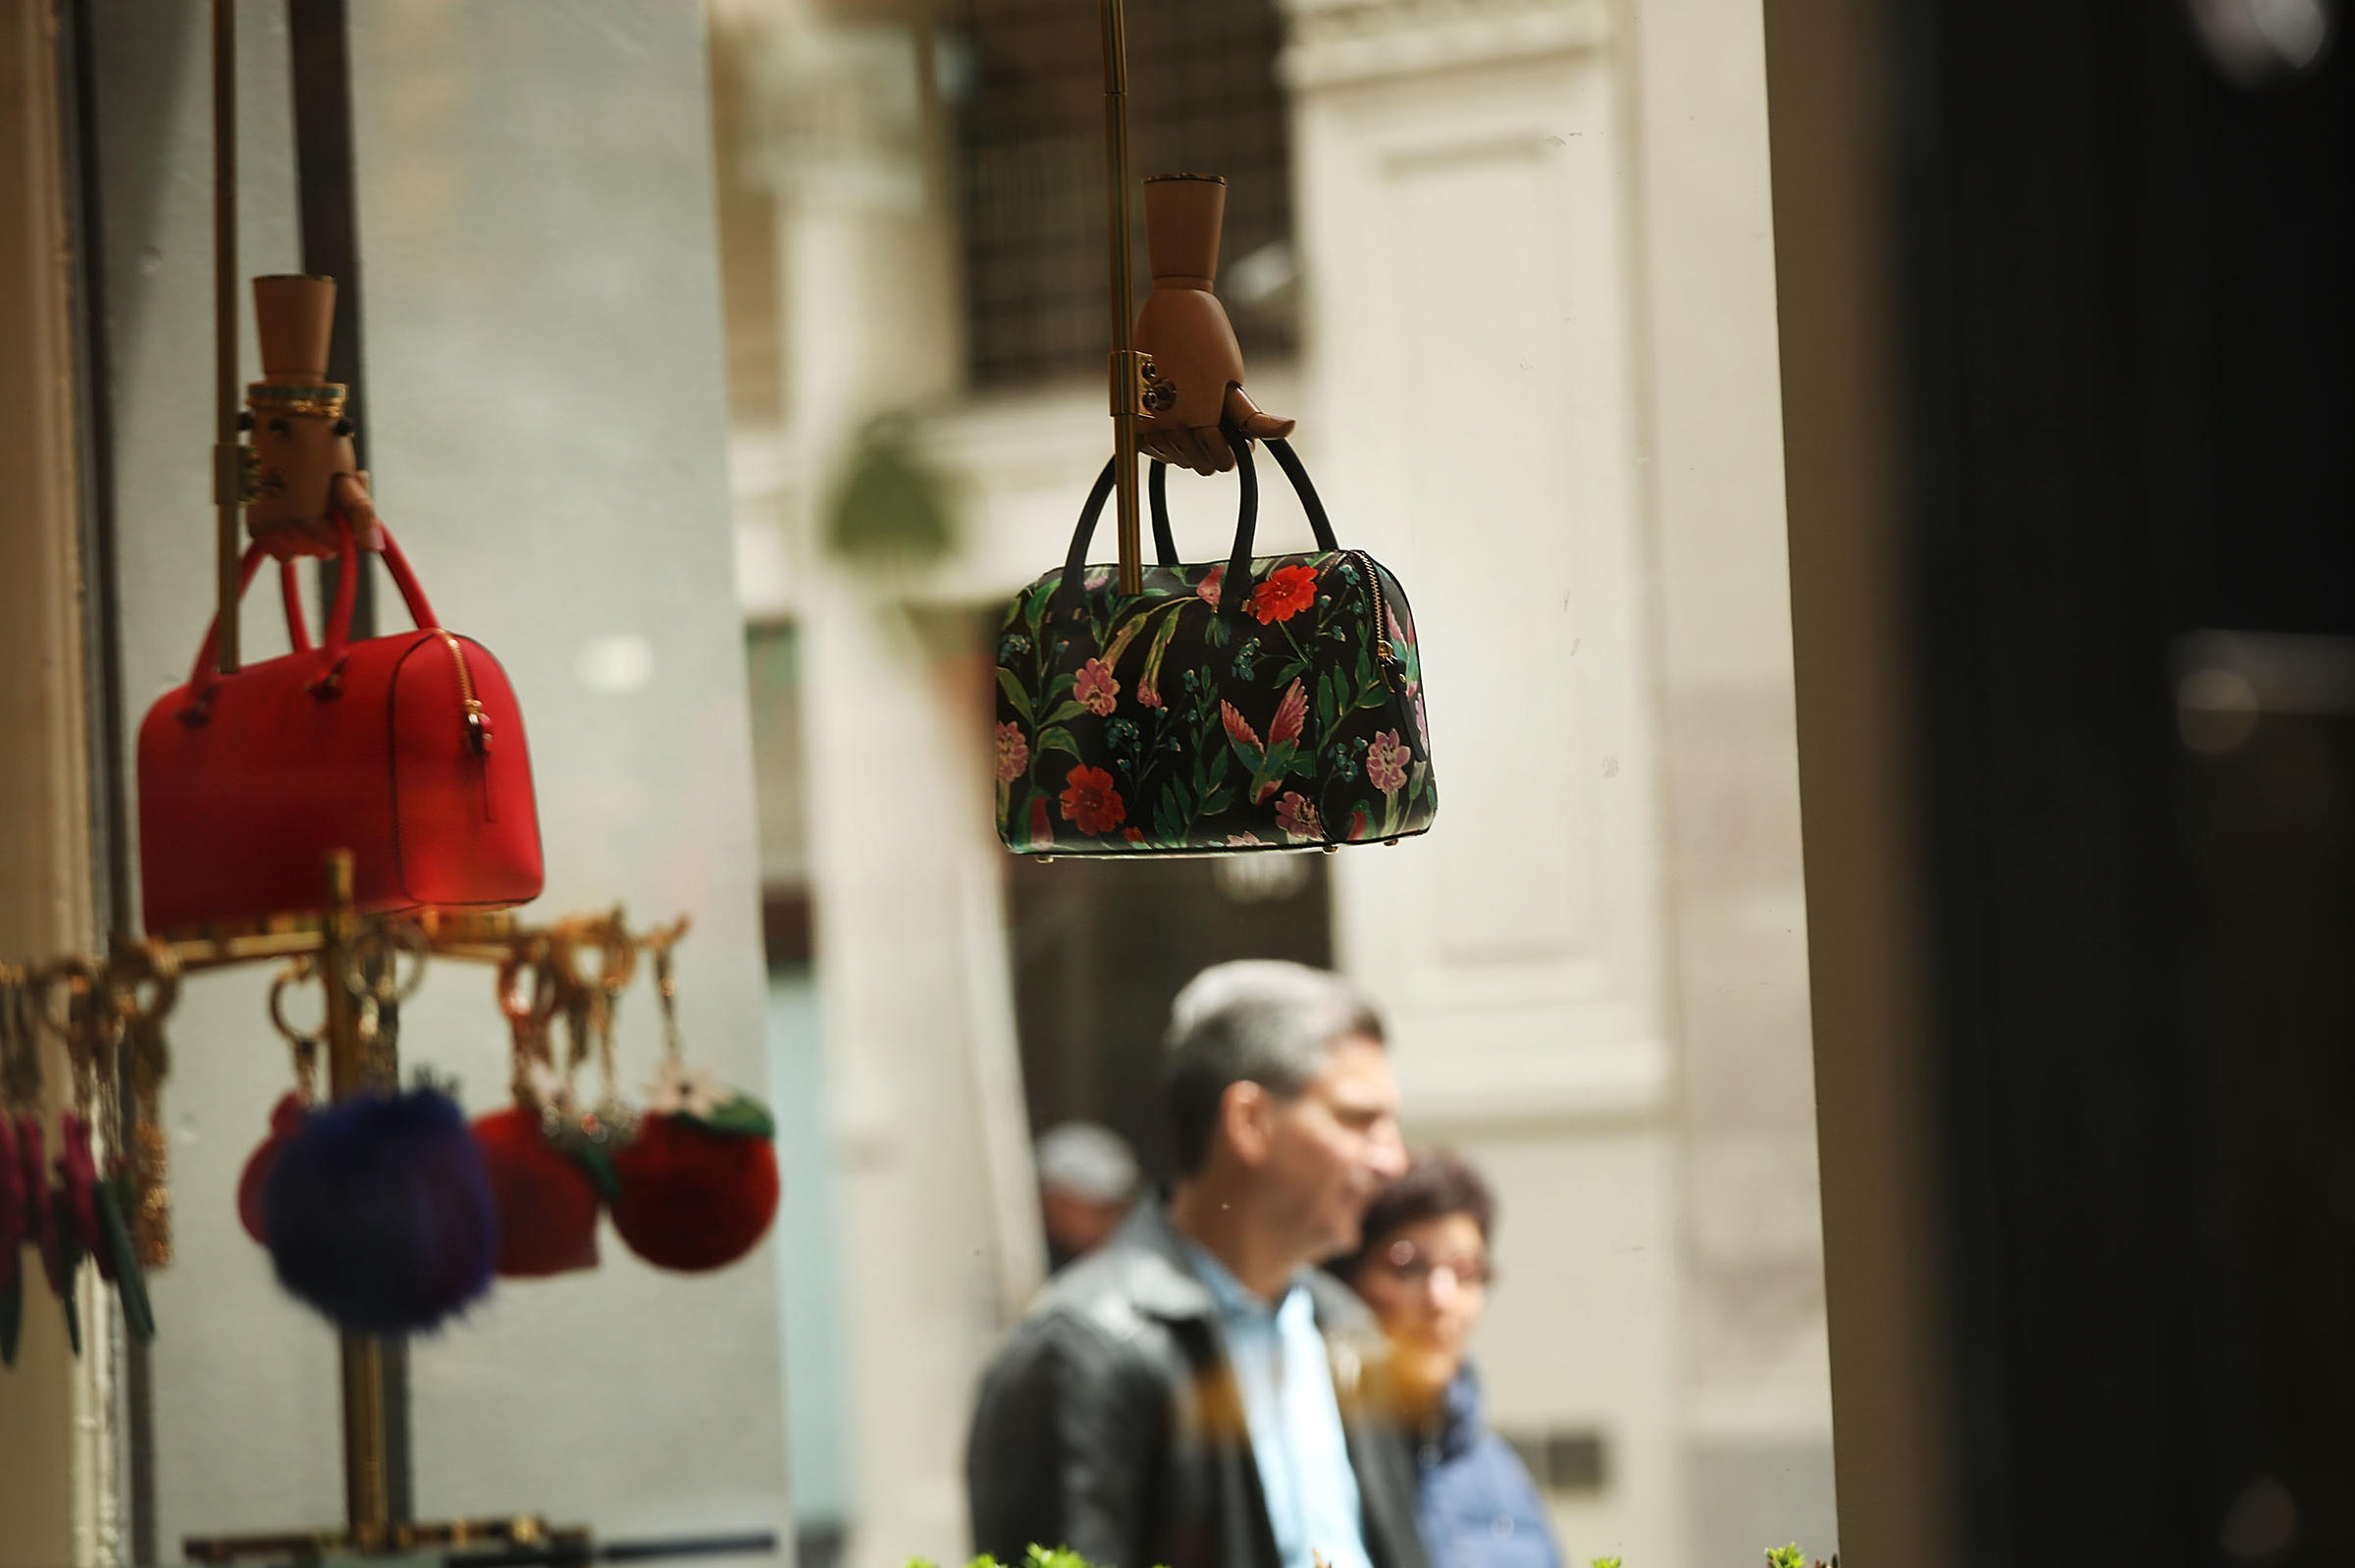 Coach to acquire handbag company Kate Spade for $2.4bn